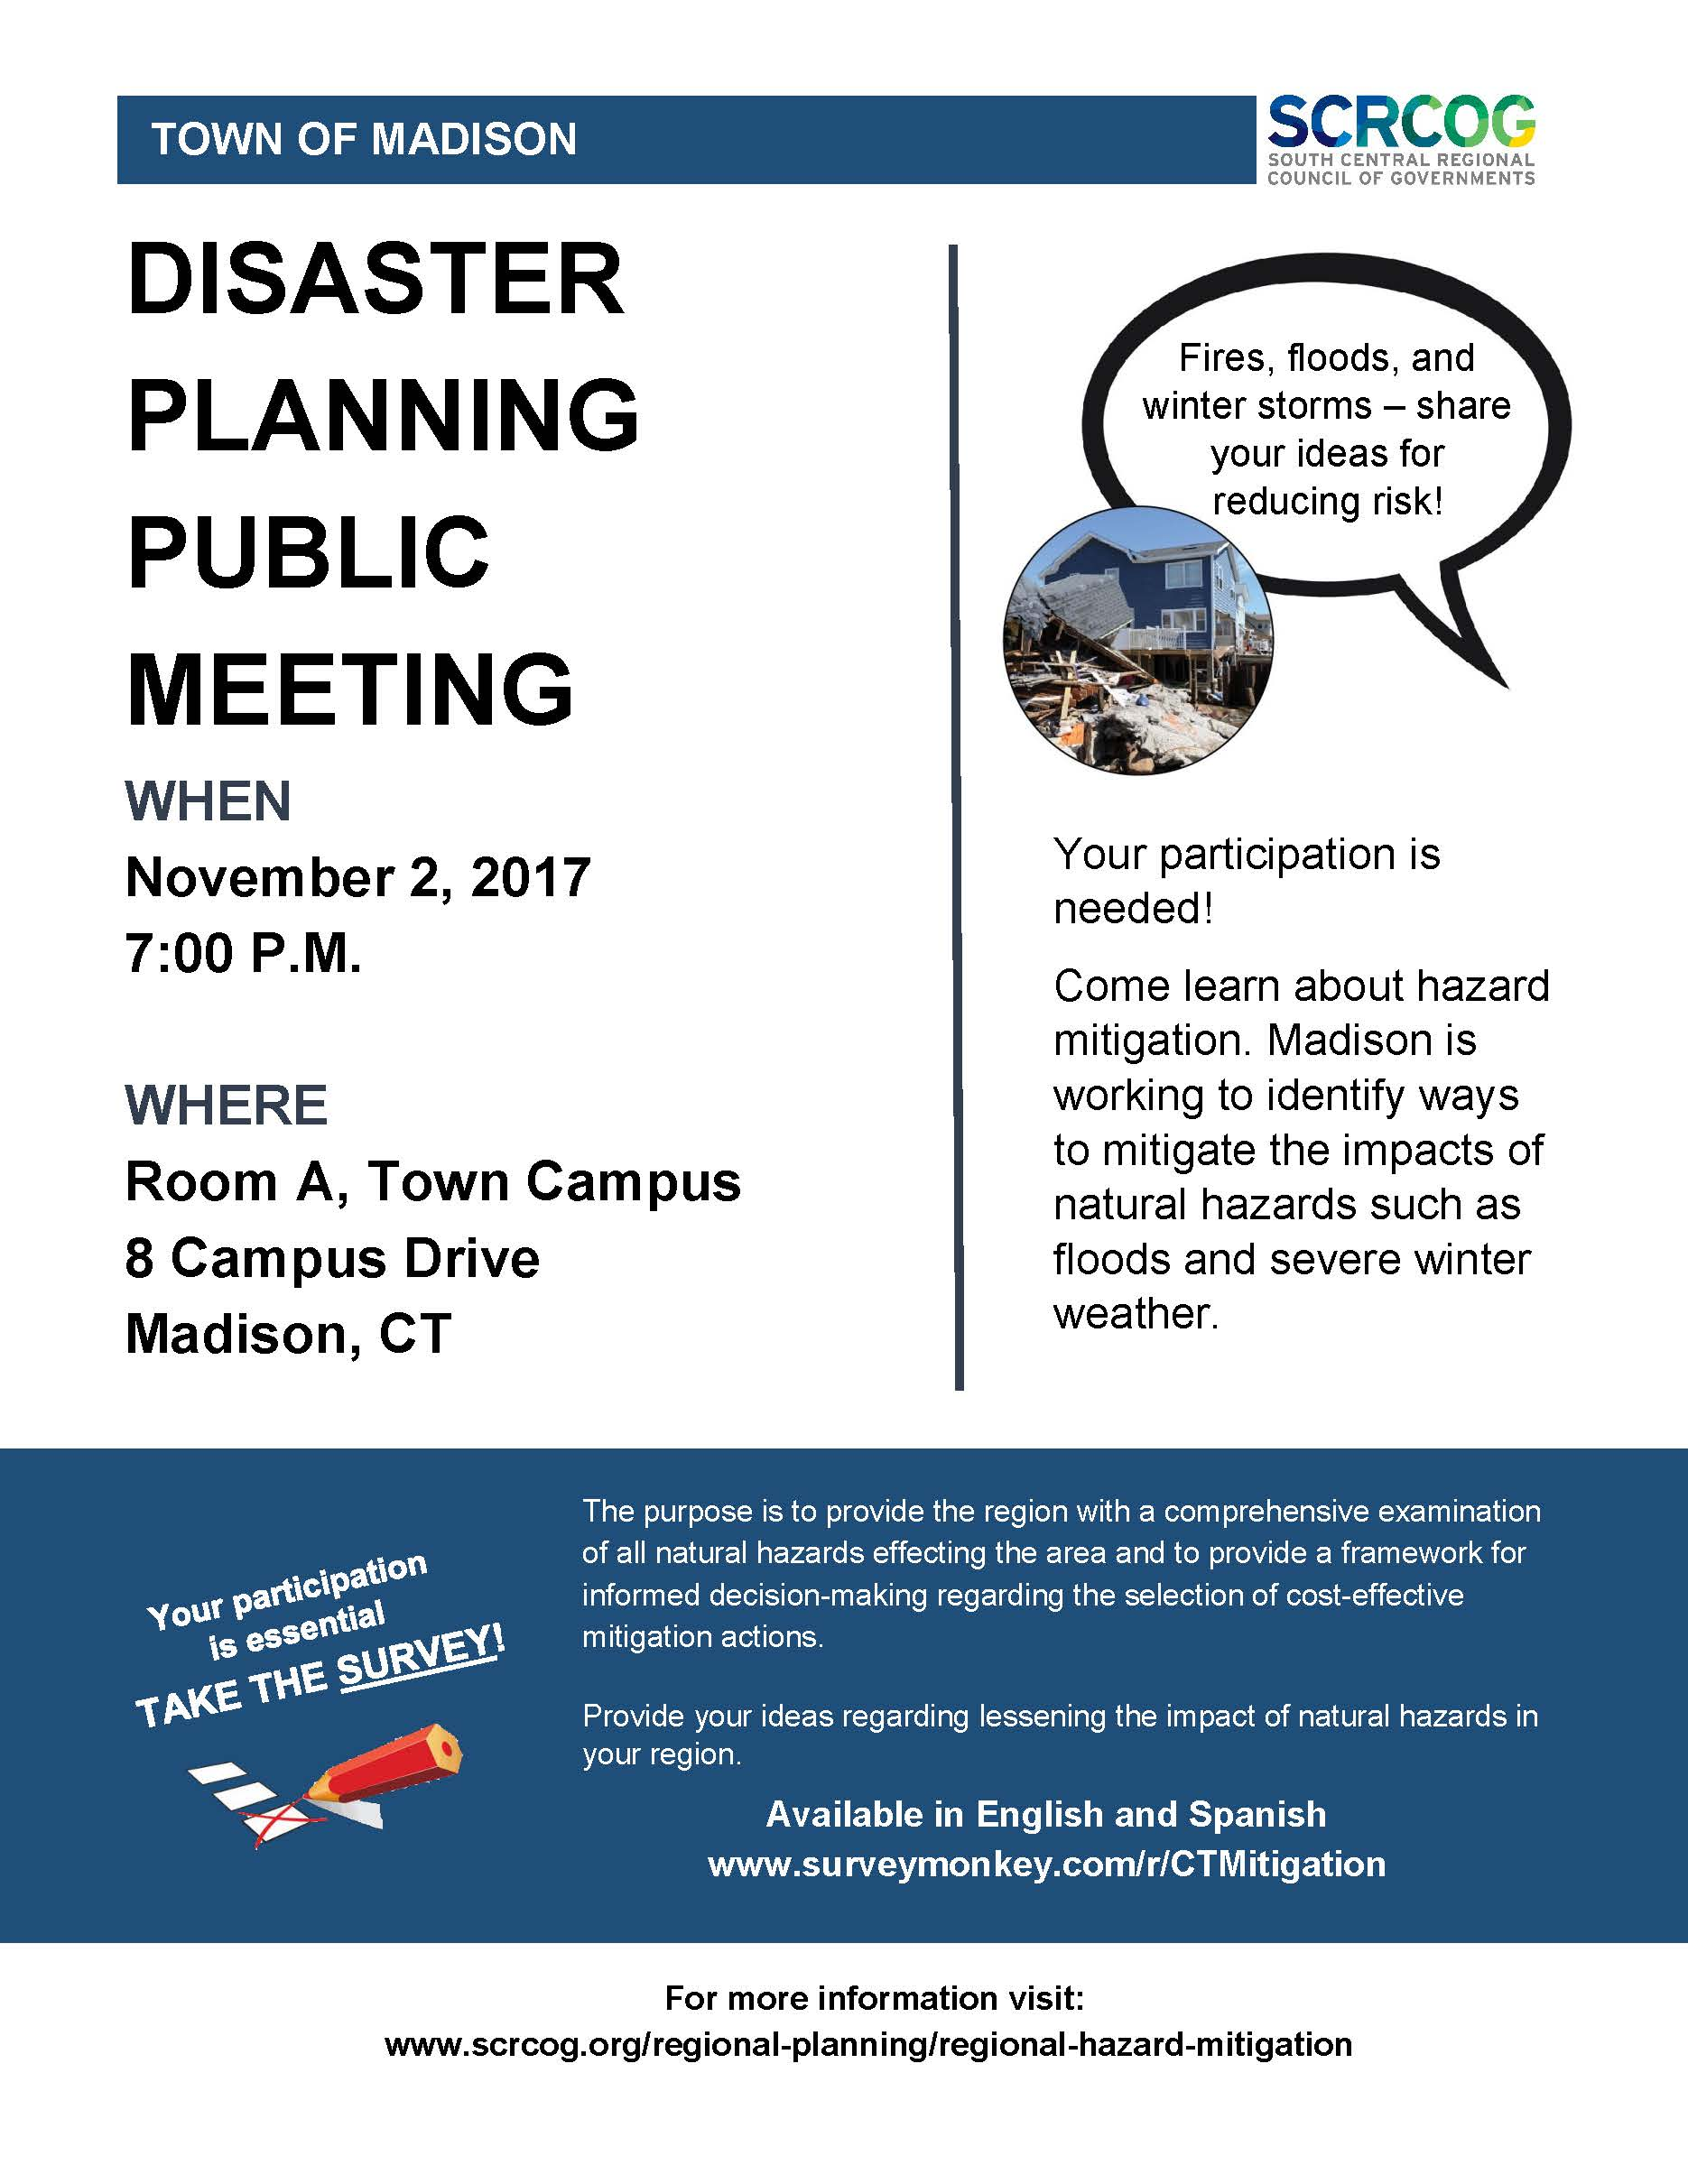 SCRCOG Public Meeting Flyer - Nov 2, 2017 at 7 PM at Madison Town Campus